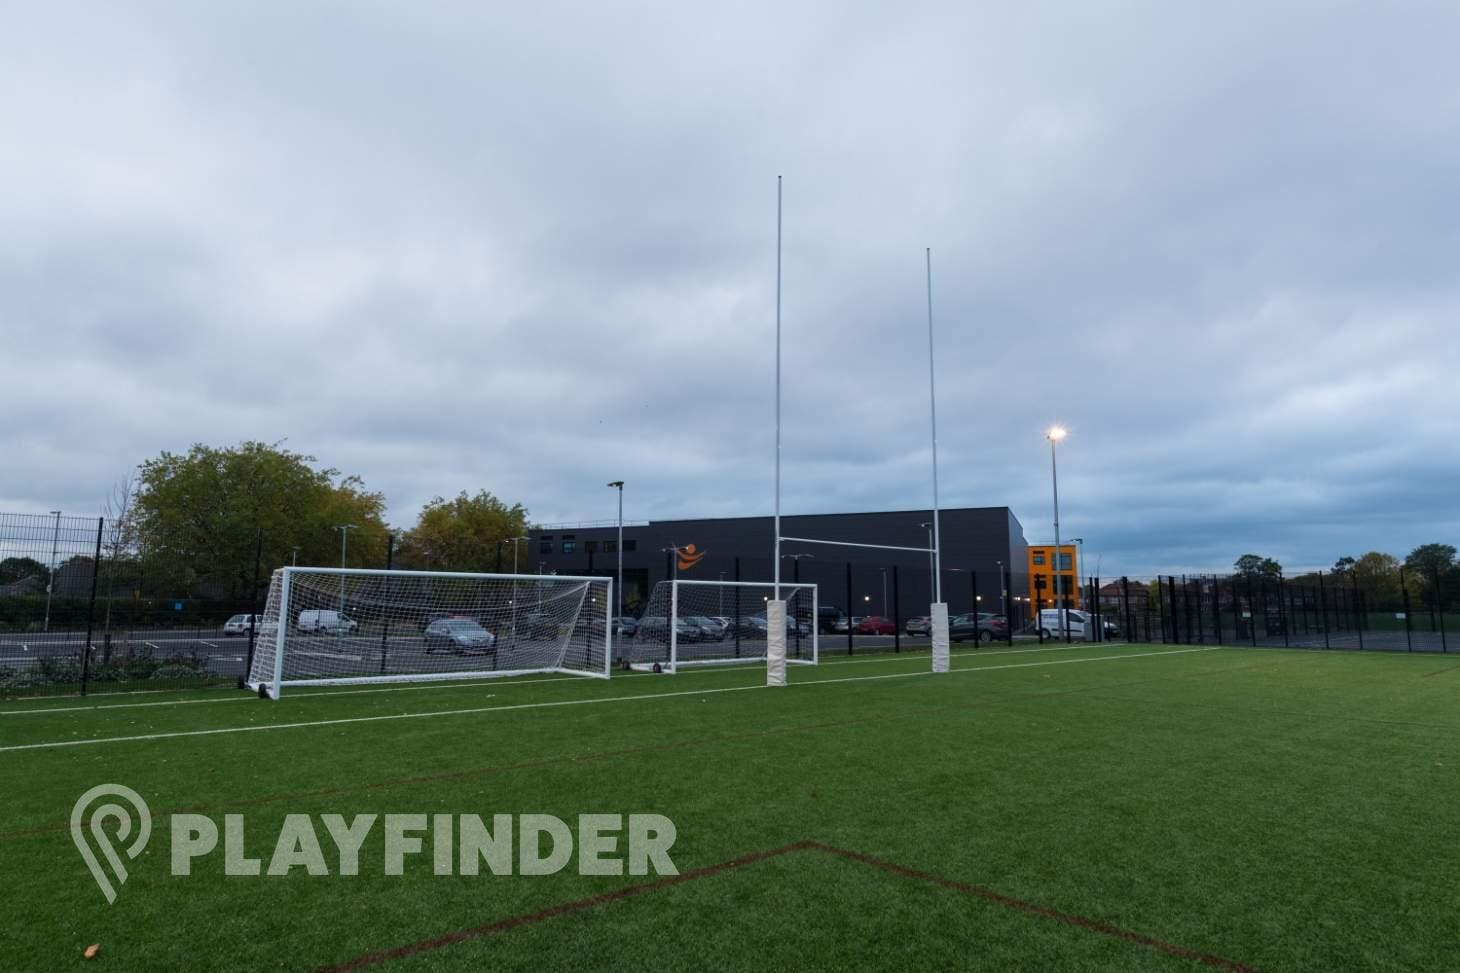 Manchester Enterprise Academy Central Training pitch | 3G Astroturf rugby pitch